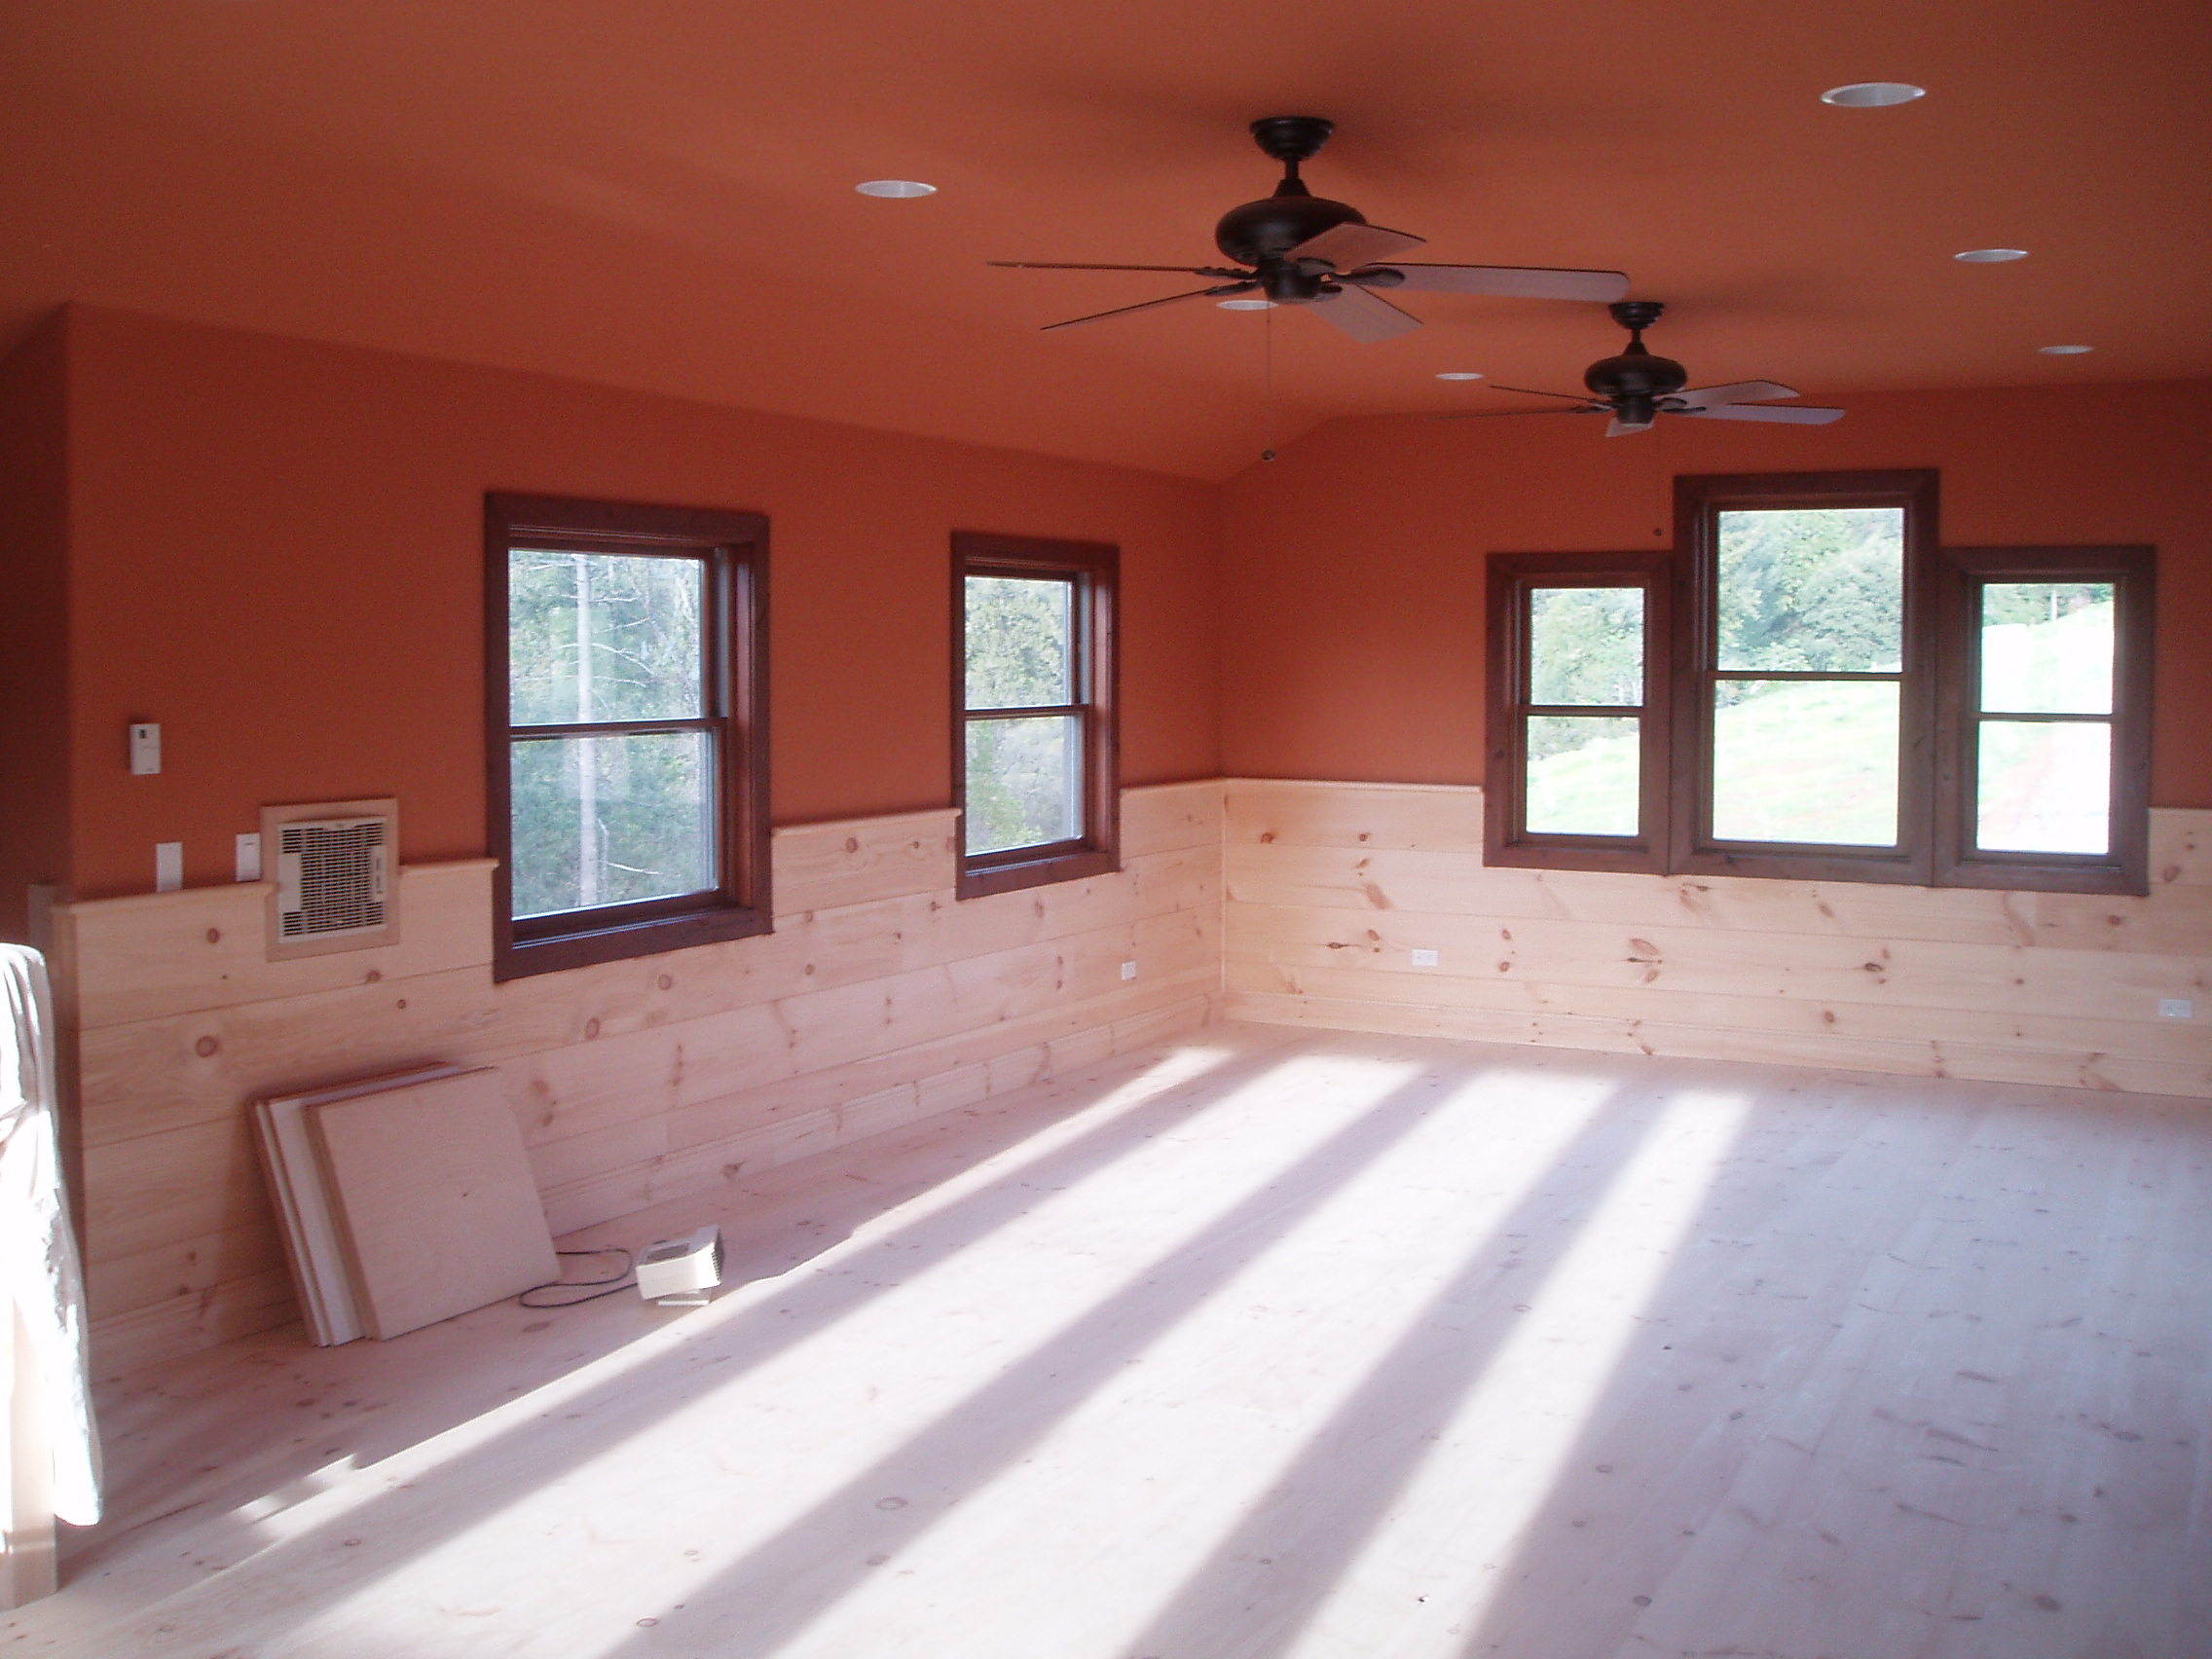 Orange walls and dark walnut stain